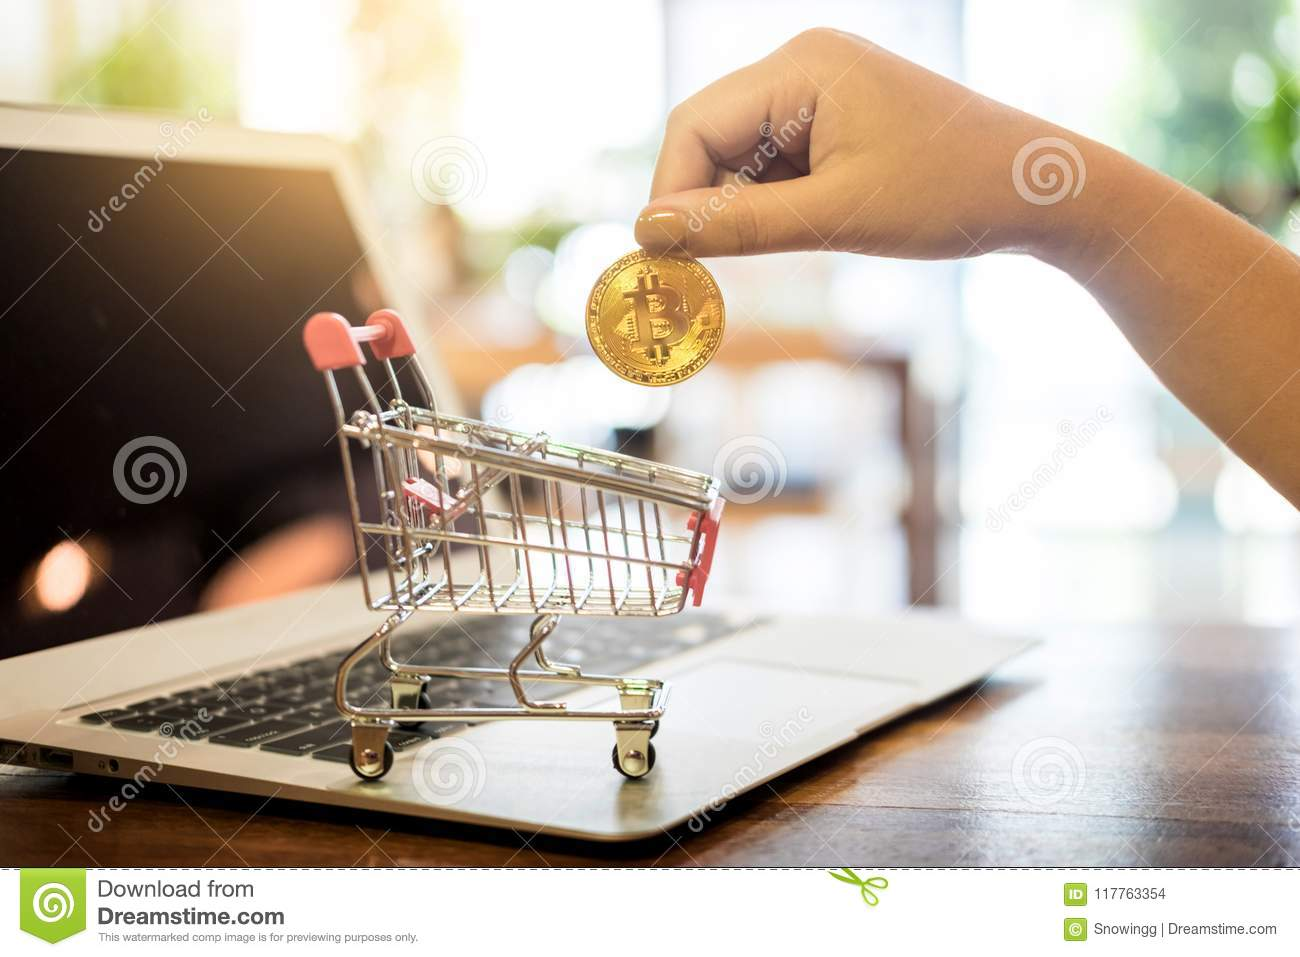 hand with golden metal Bitcoin crypto currency investment- symbolic block chain financial internet and technology.